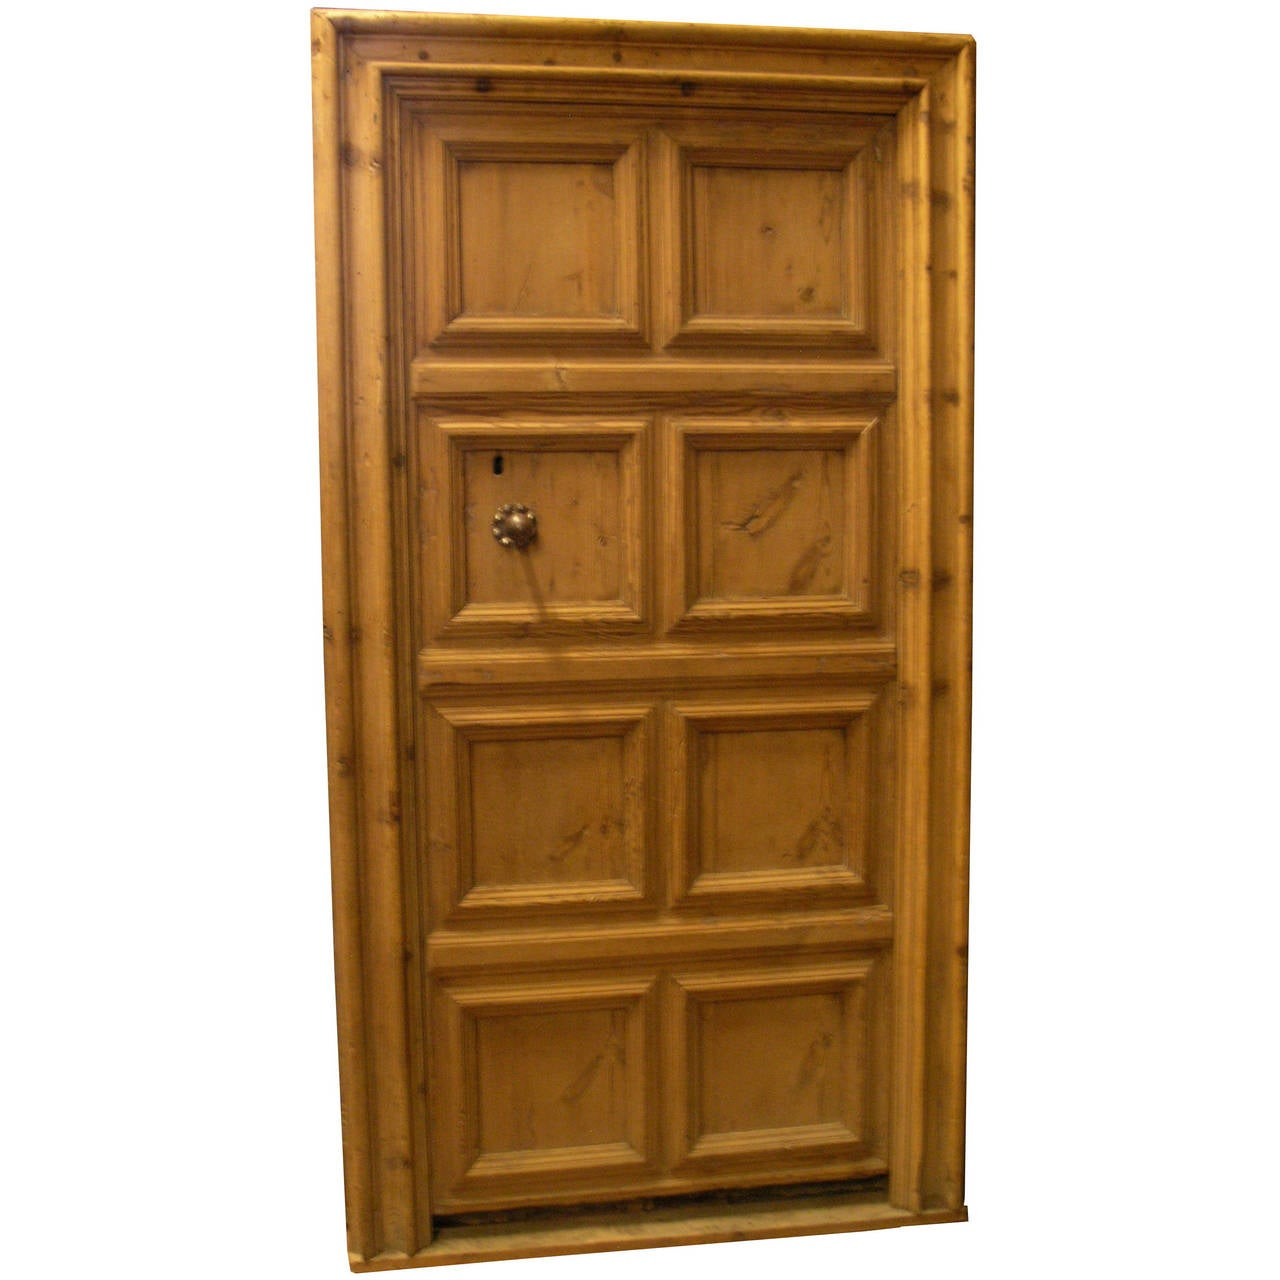 Antique Entry Doors For Sale | Antique Furniture